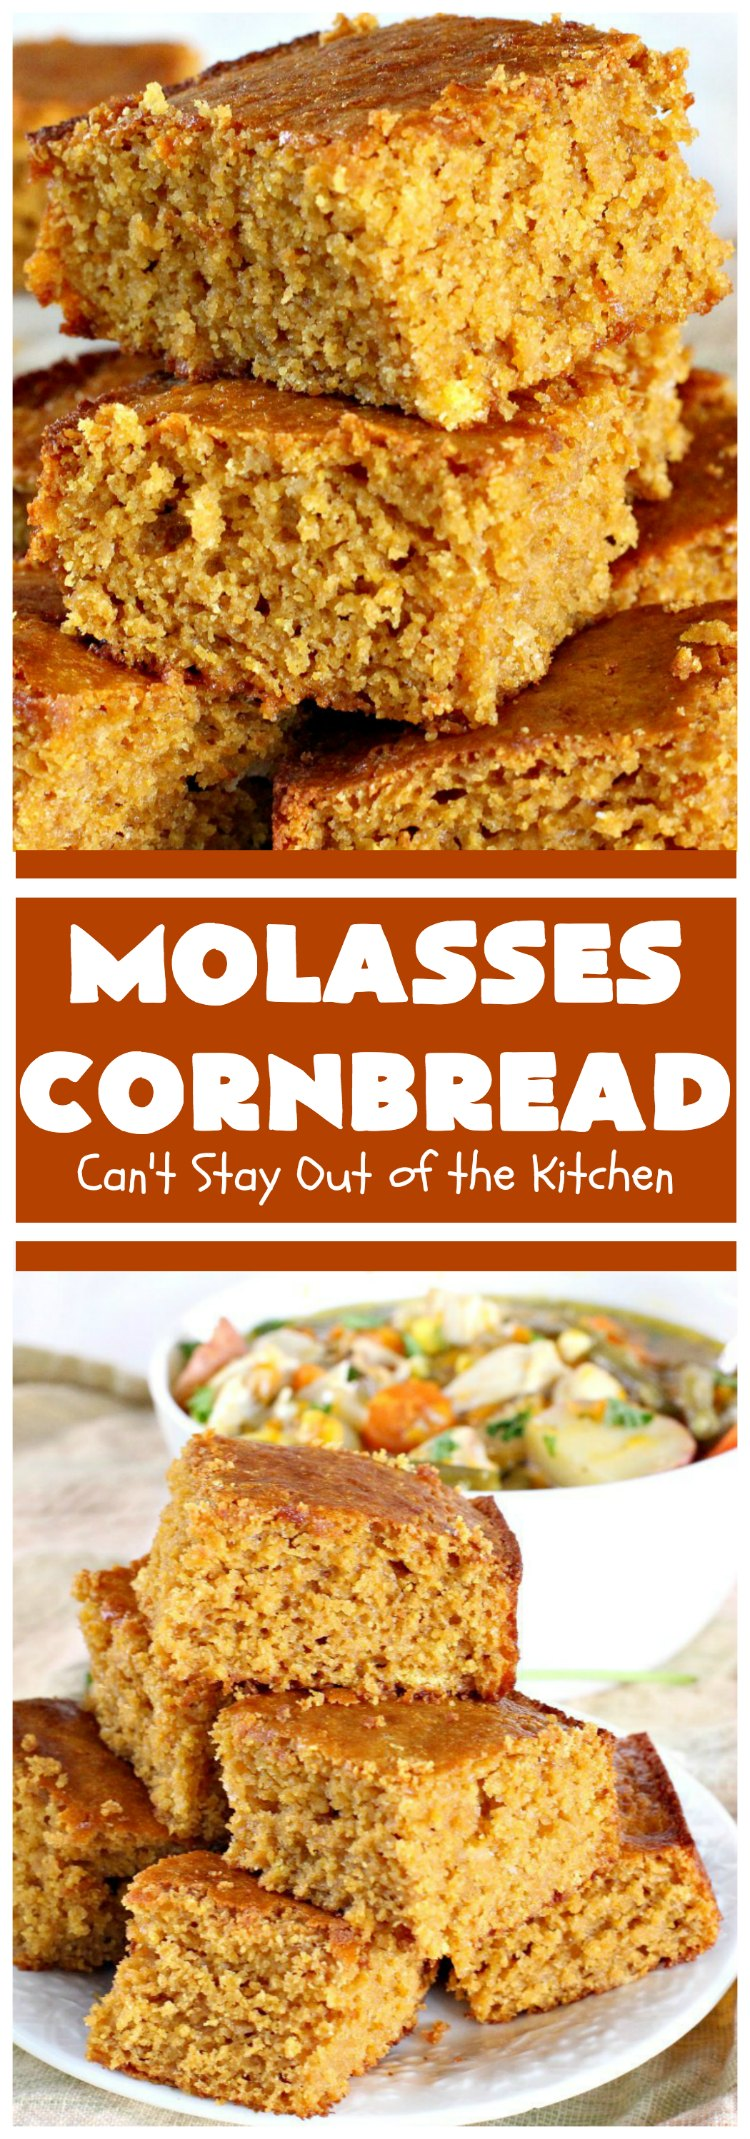 Molasses Cornbread | Can't Stay Out of the Kitchen